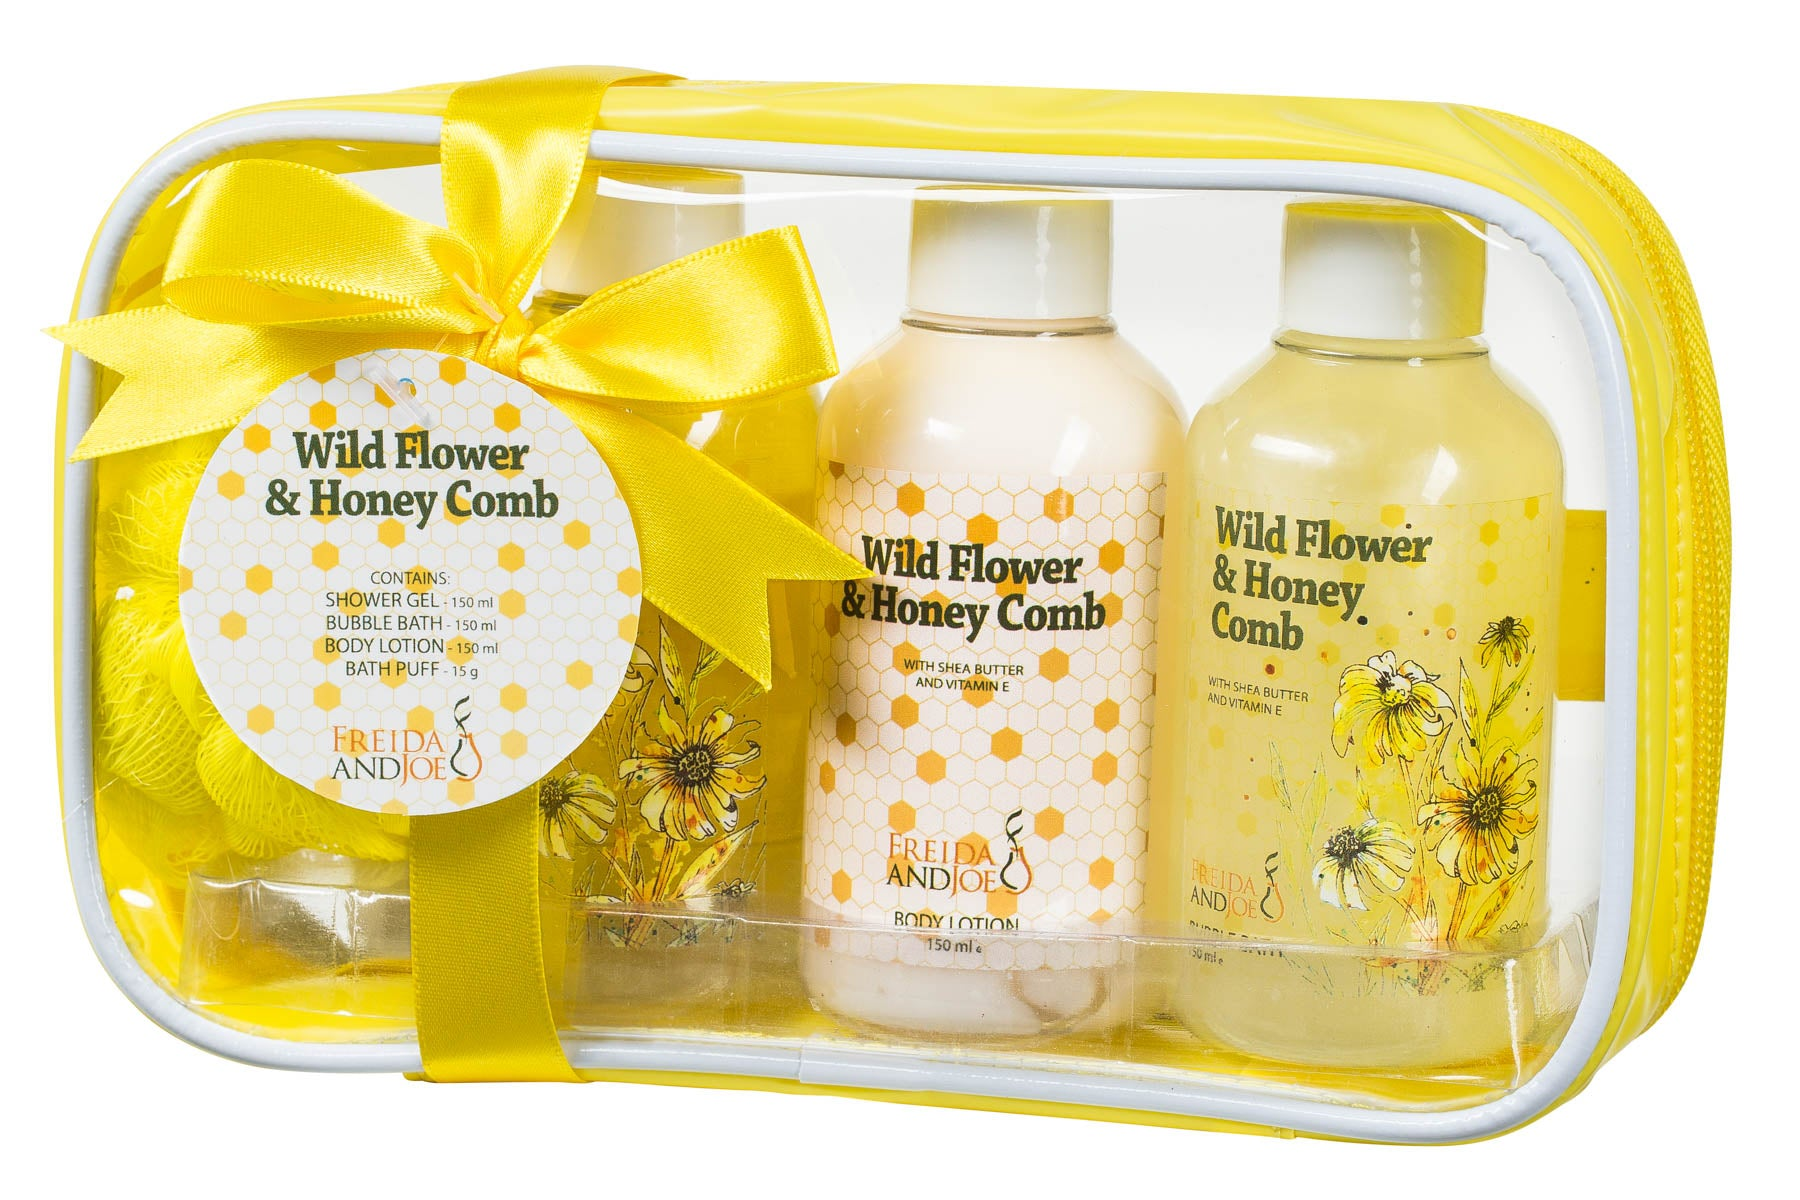 Wild Flower and Honey Comb Spa Gift Set: Shower Gel, Bubble Bath, Body Lotion, & Puf